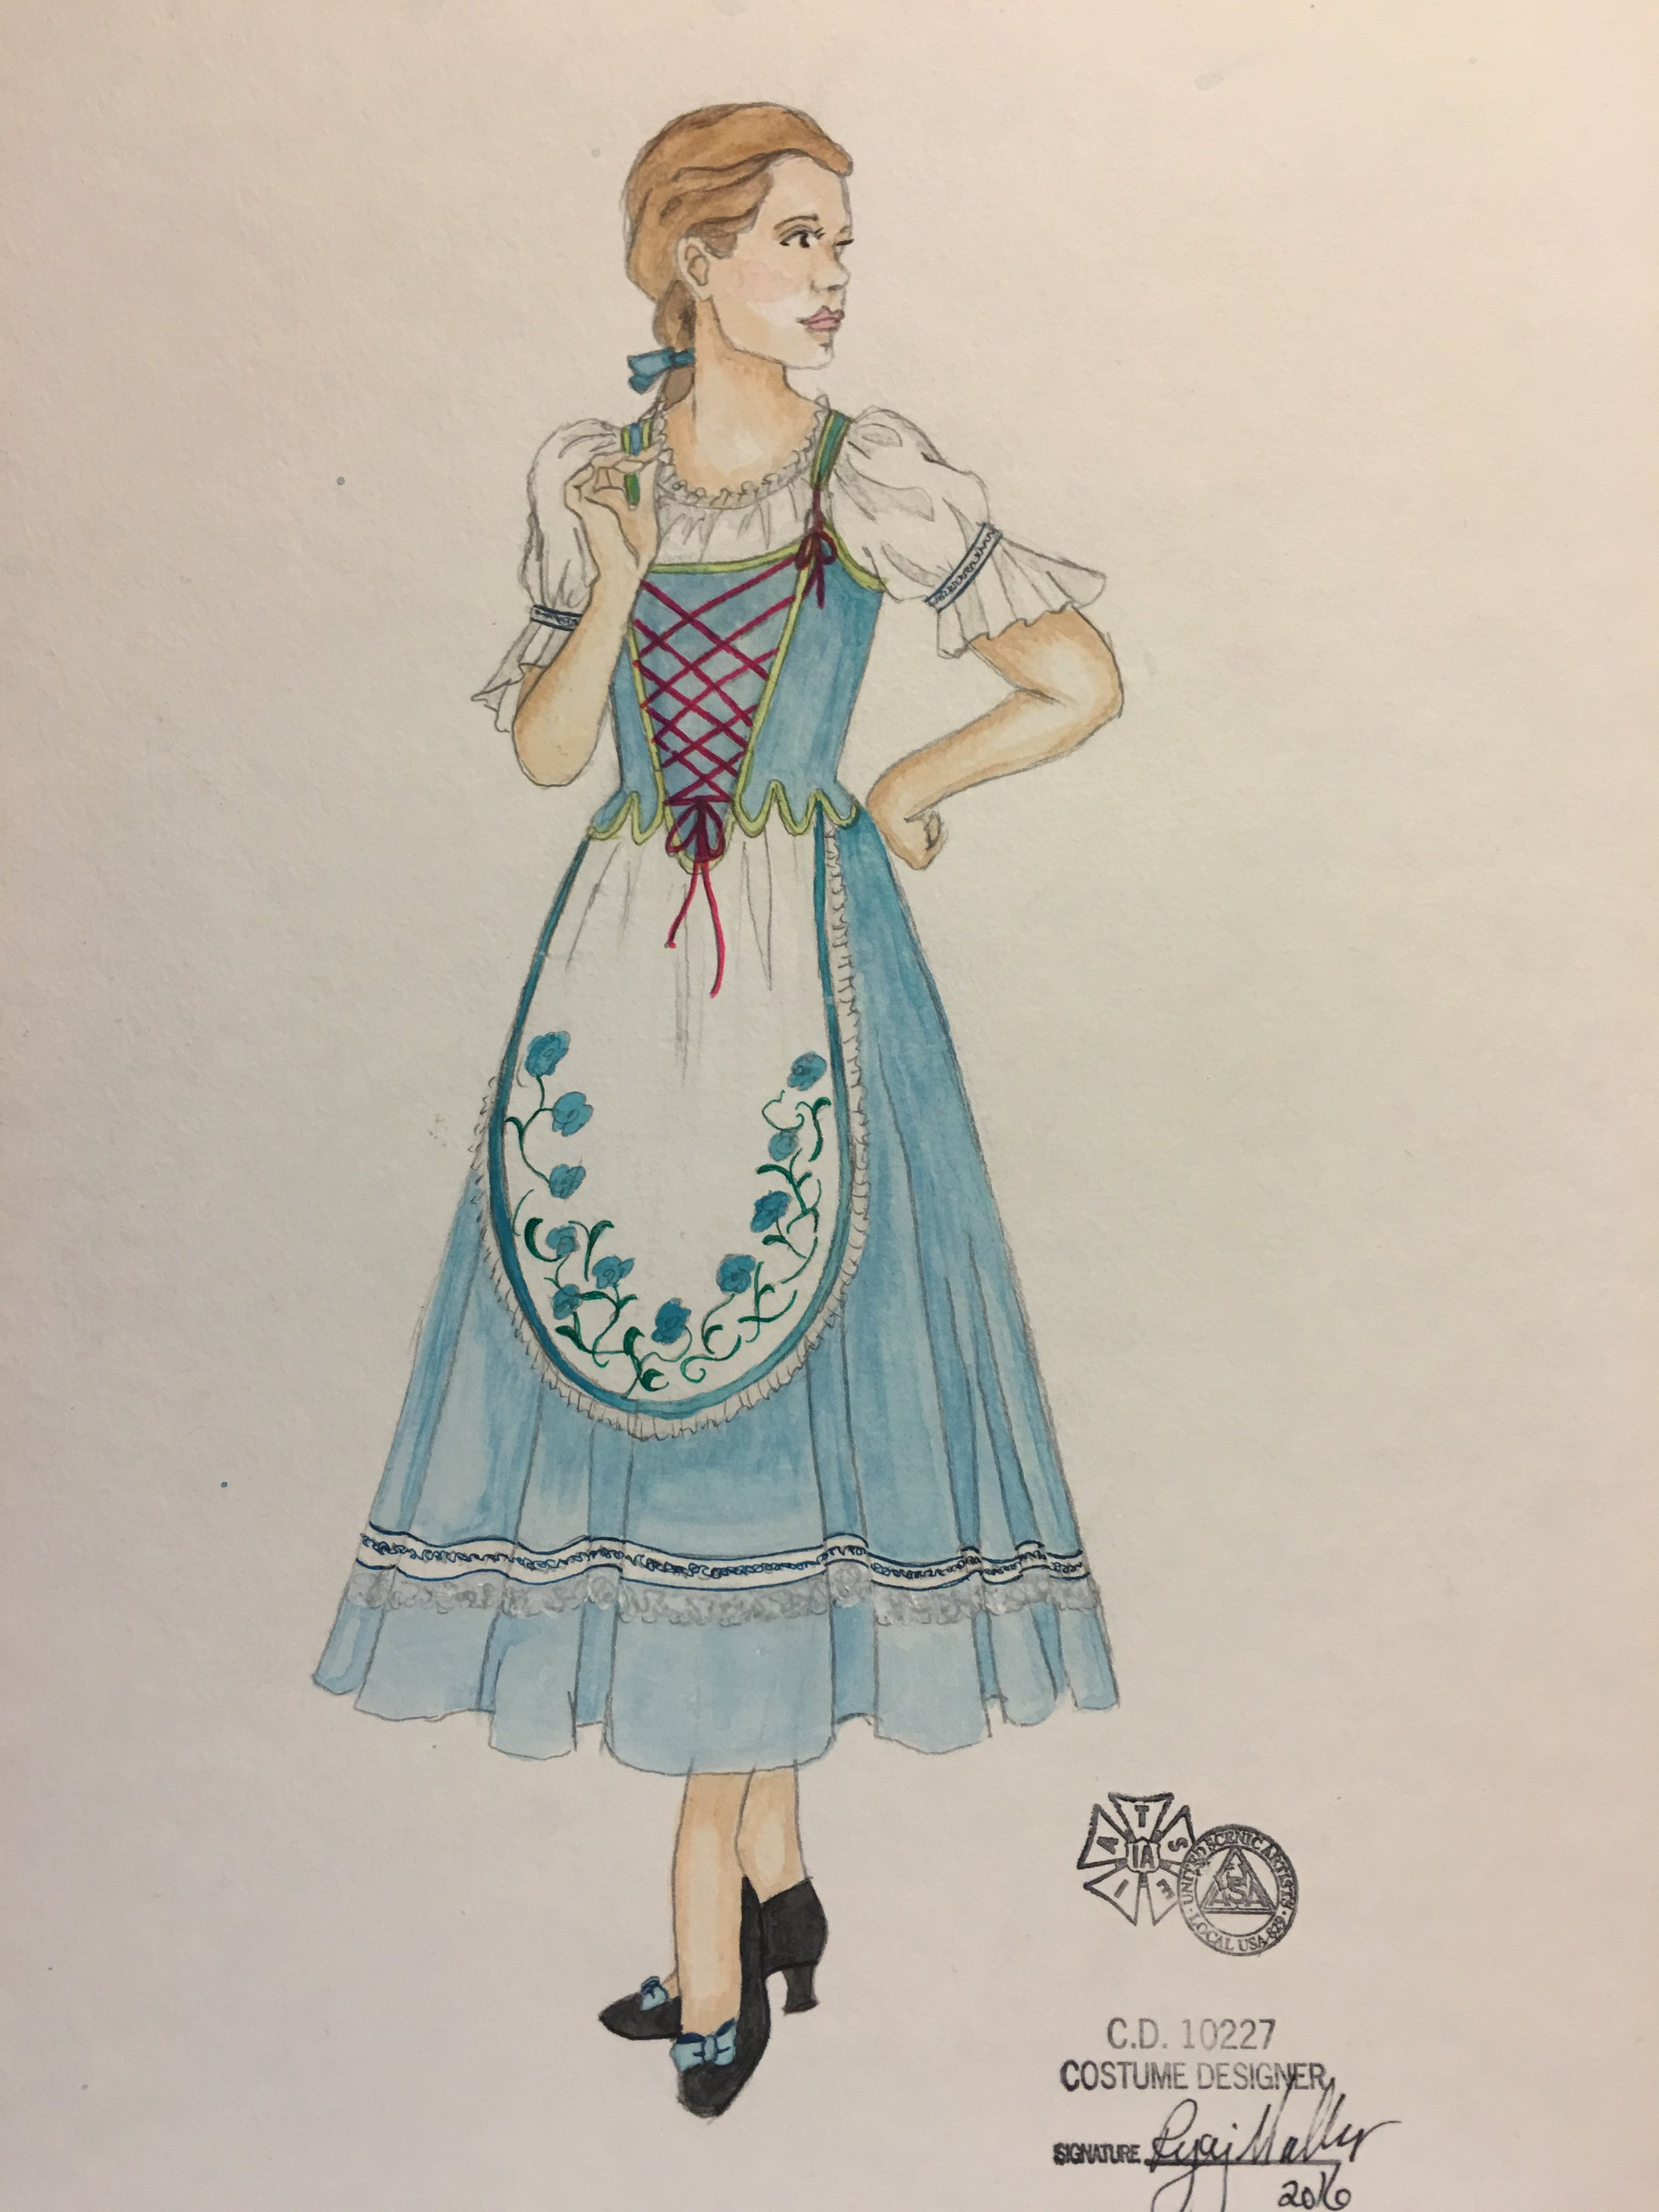 Beauty And The Beast Ryan J Moller Costume Design